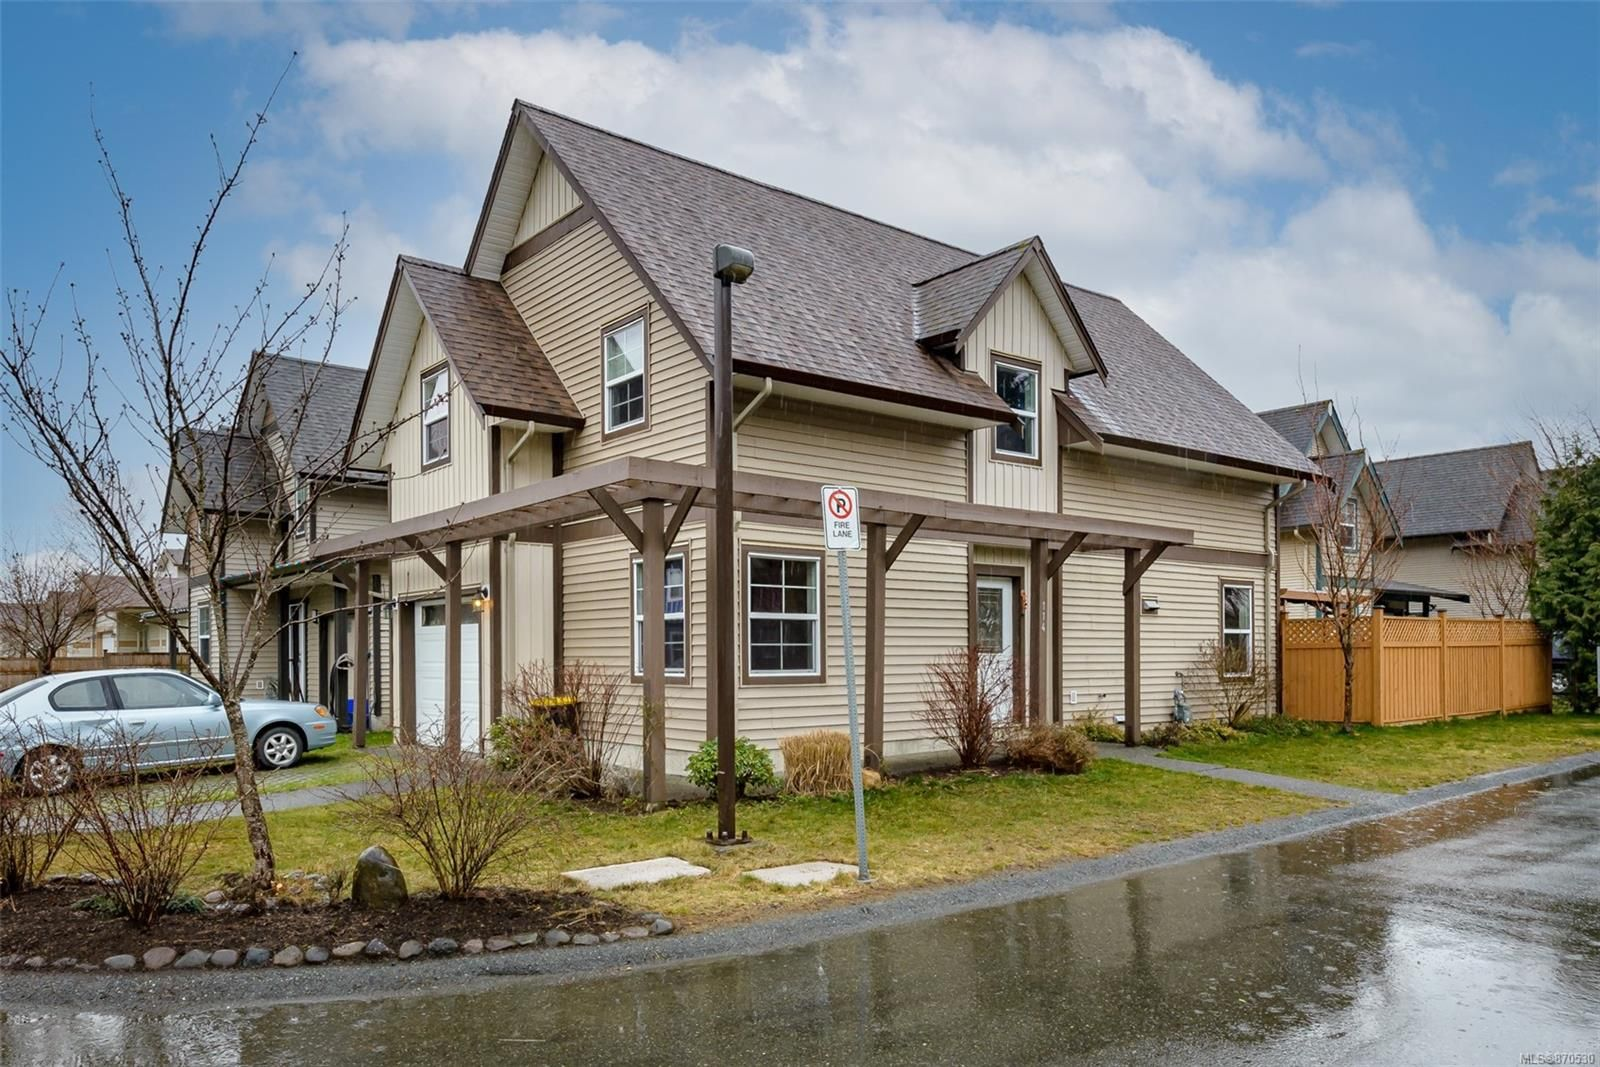 Main Photo: 114 2787 1st St in : CV Courtenay City House for sale (Comox Valley)  : MLS®# 870530